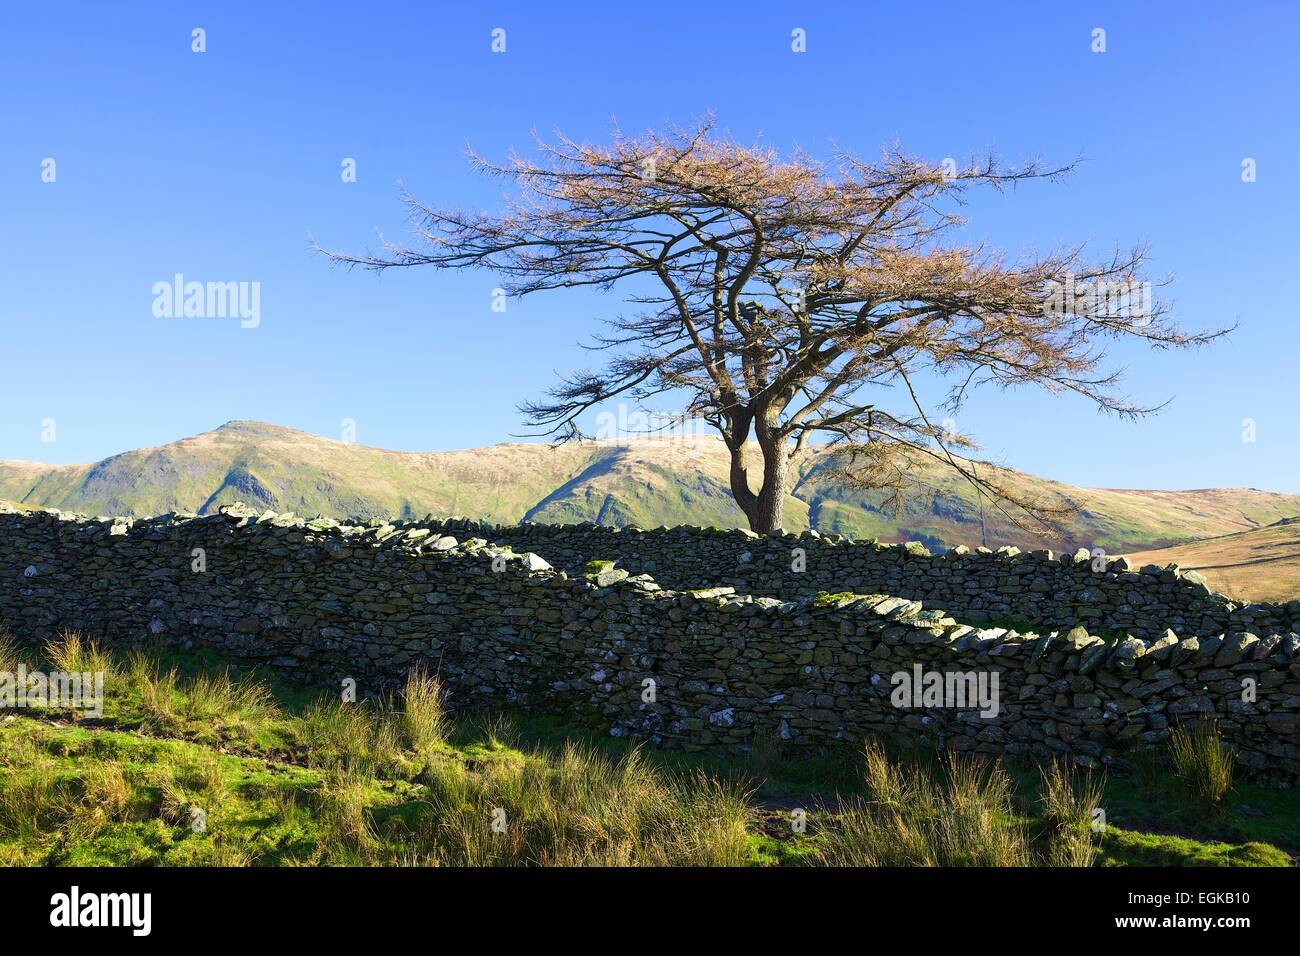 Scots pine by drystone walled road. Kirk Stone Pass, Lake District National Park, Cumbria England UK - Stock Image